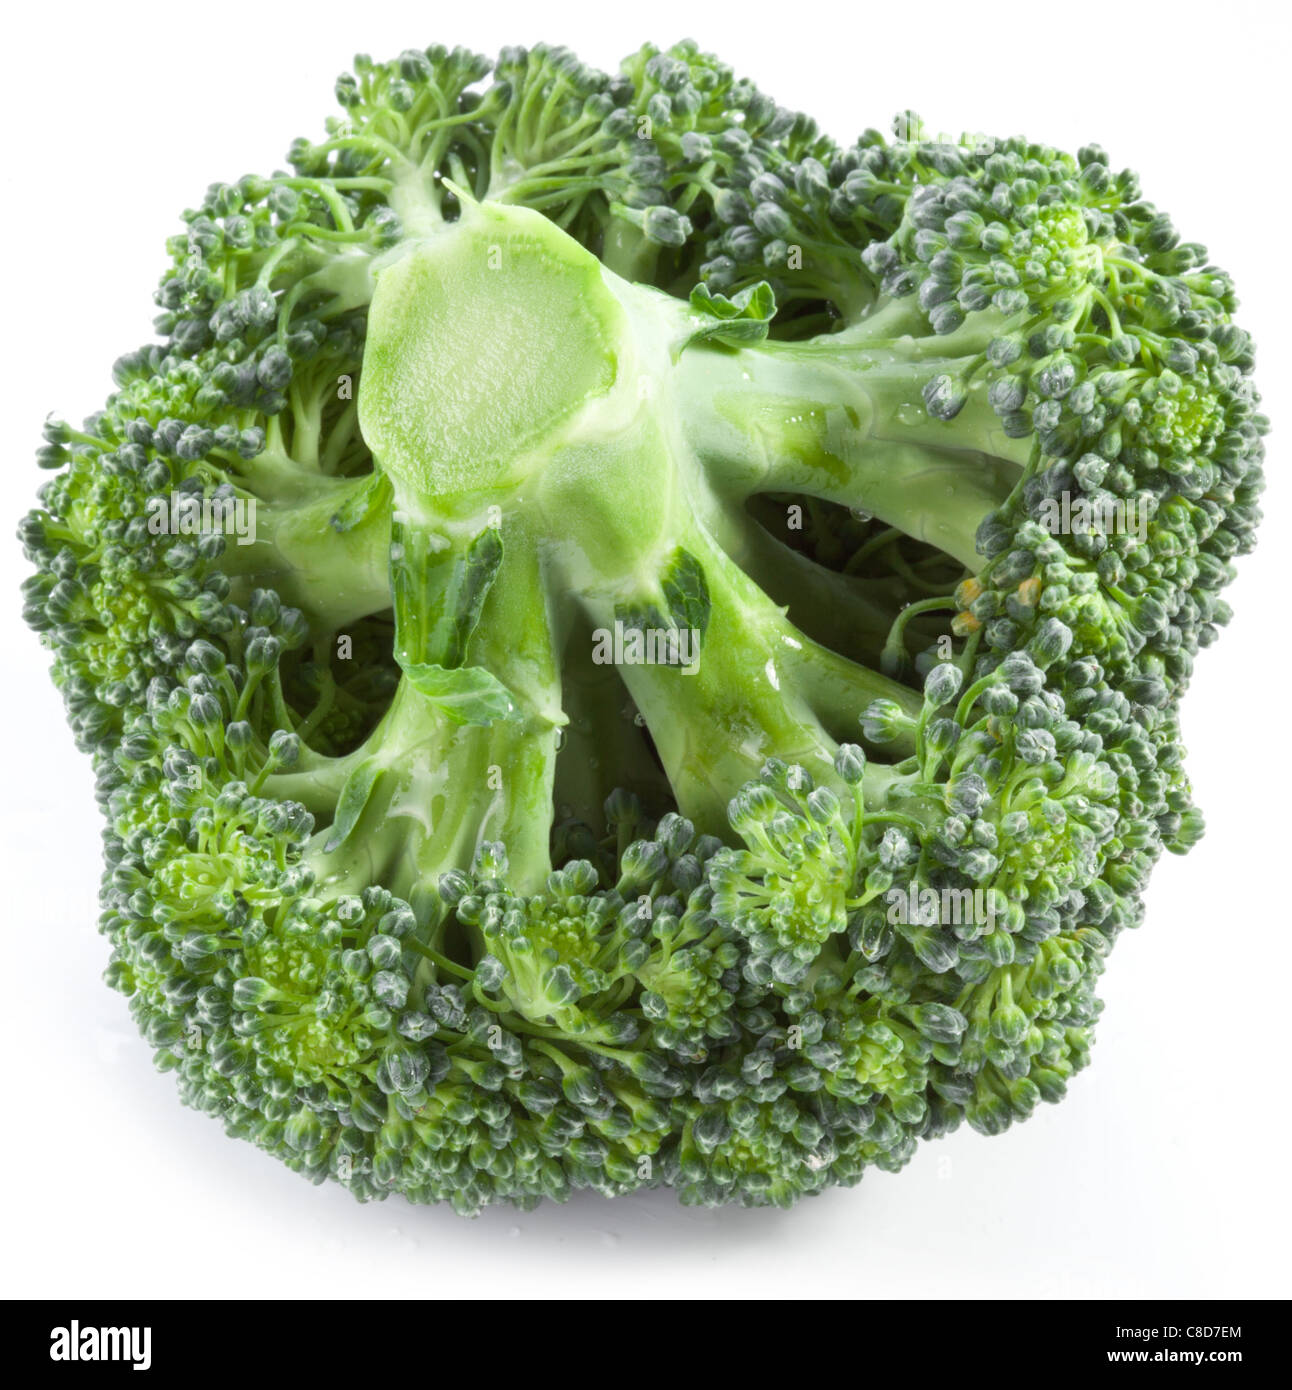 Broccoli on a white background. - Stock Image